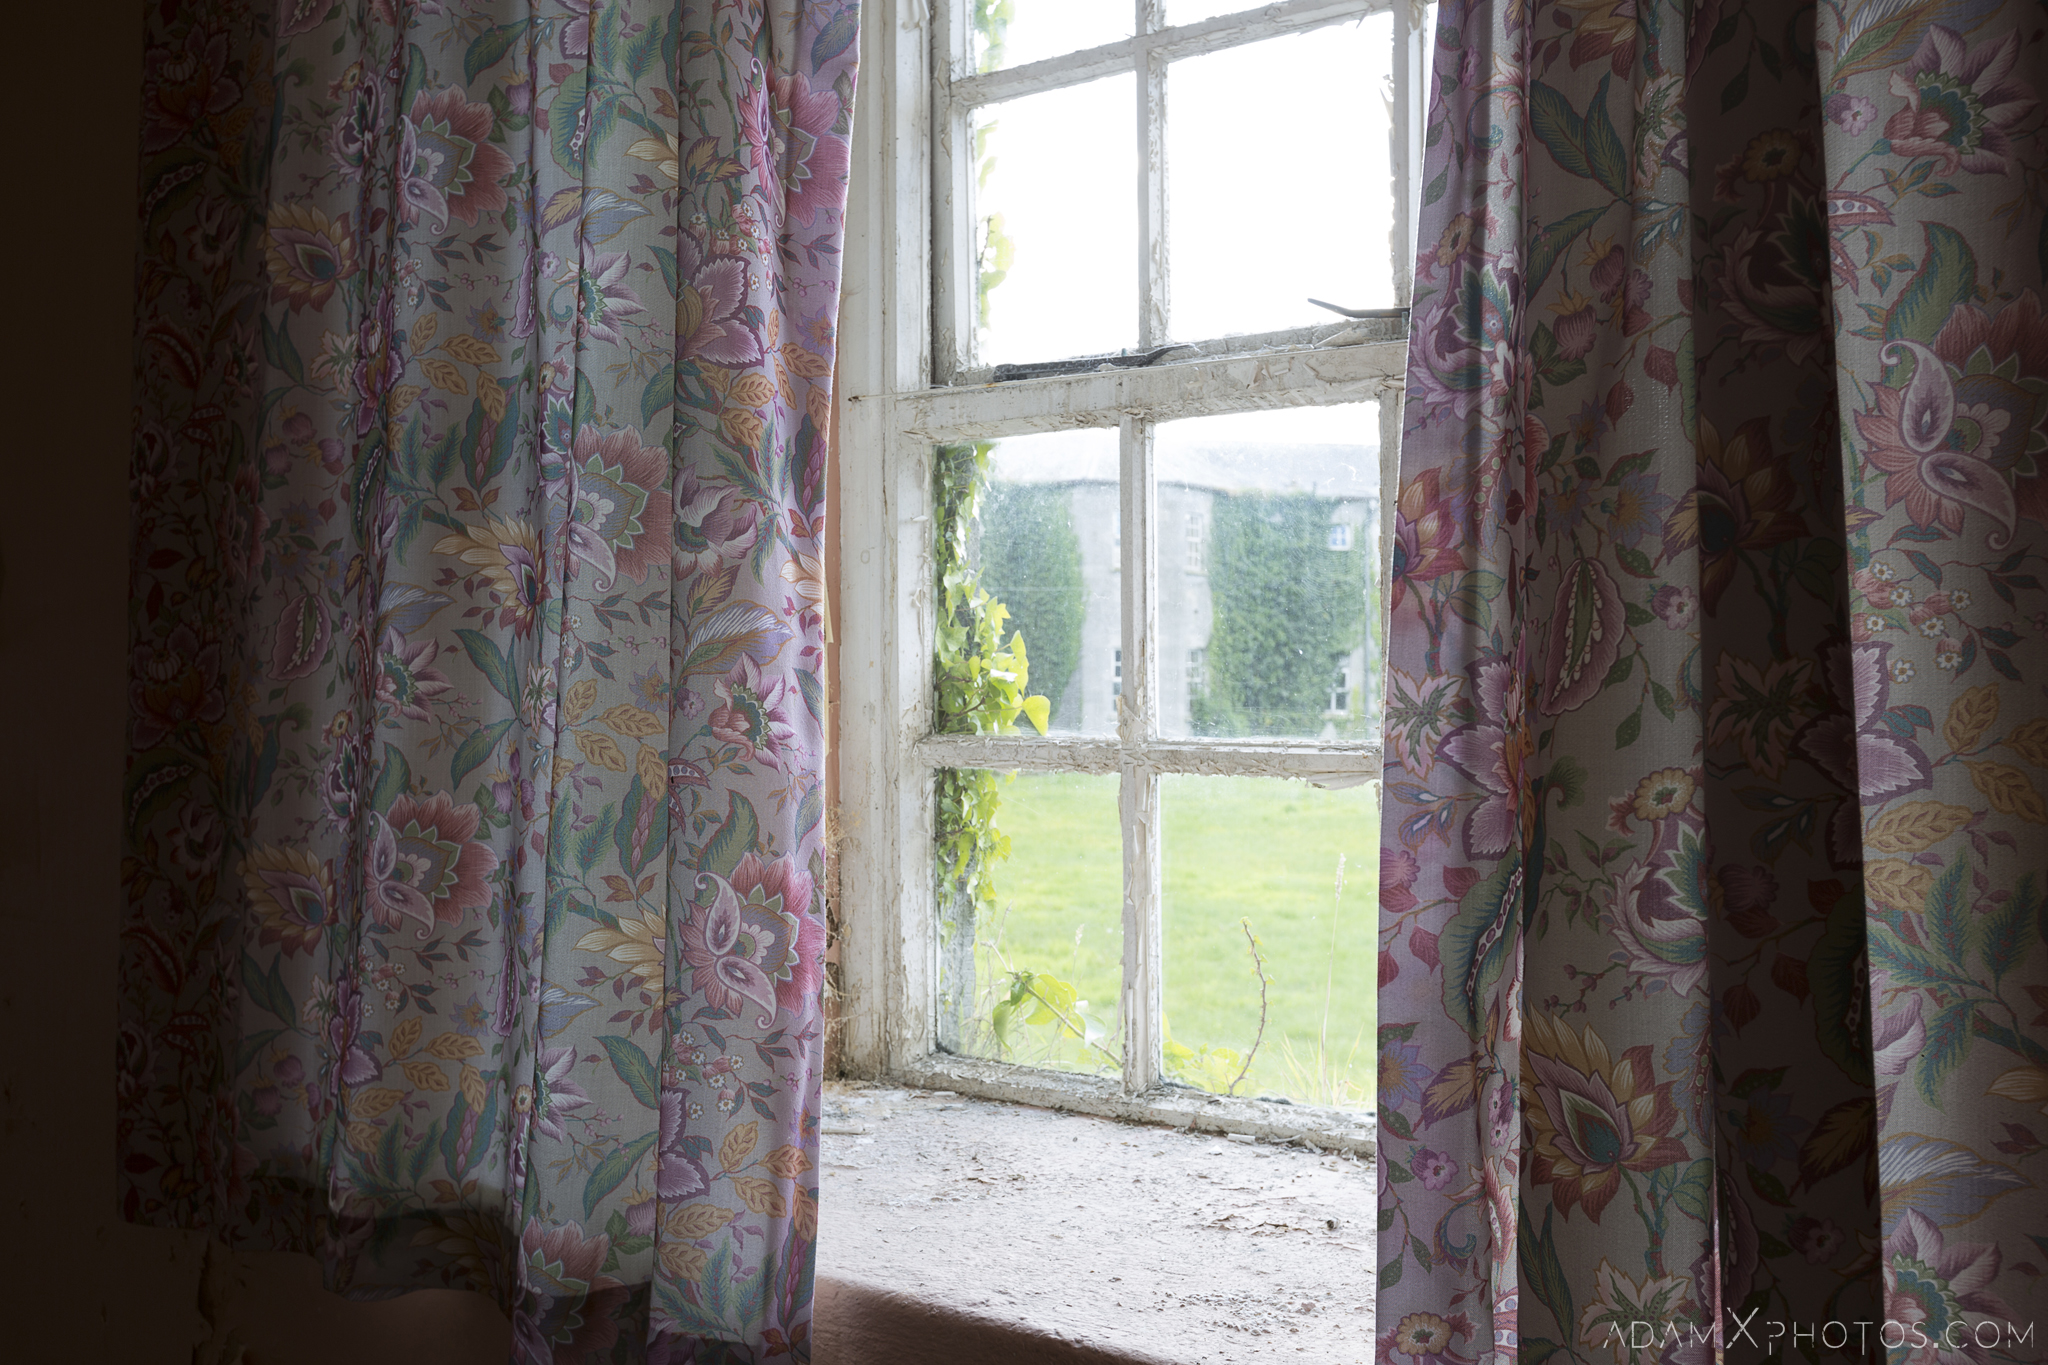 retro curtains window Connacht District Lunatic Asylum St Brigid's Hospital Adam X Urbex Urban Exploration Ireland Ballinasloe Access 2017 Abandoned decay lost forgotten derelict location creepy haunting eerie